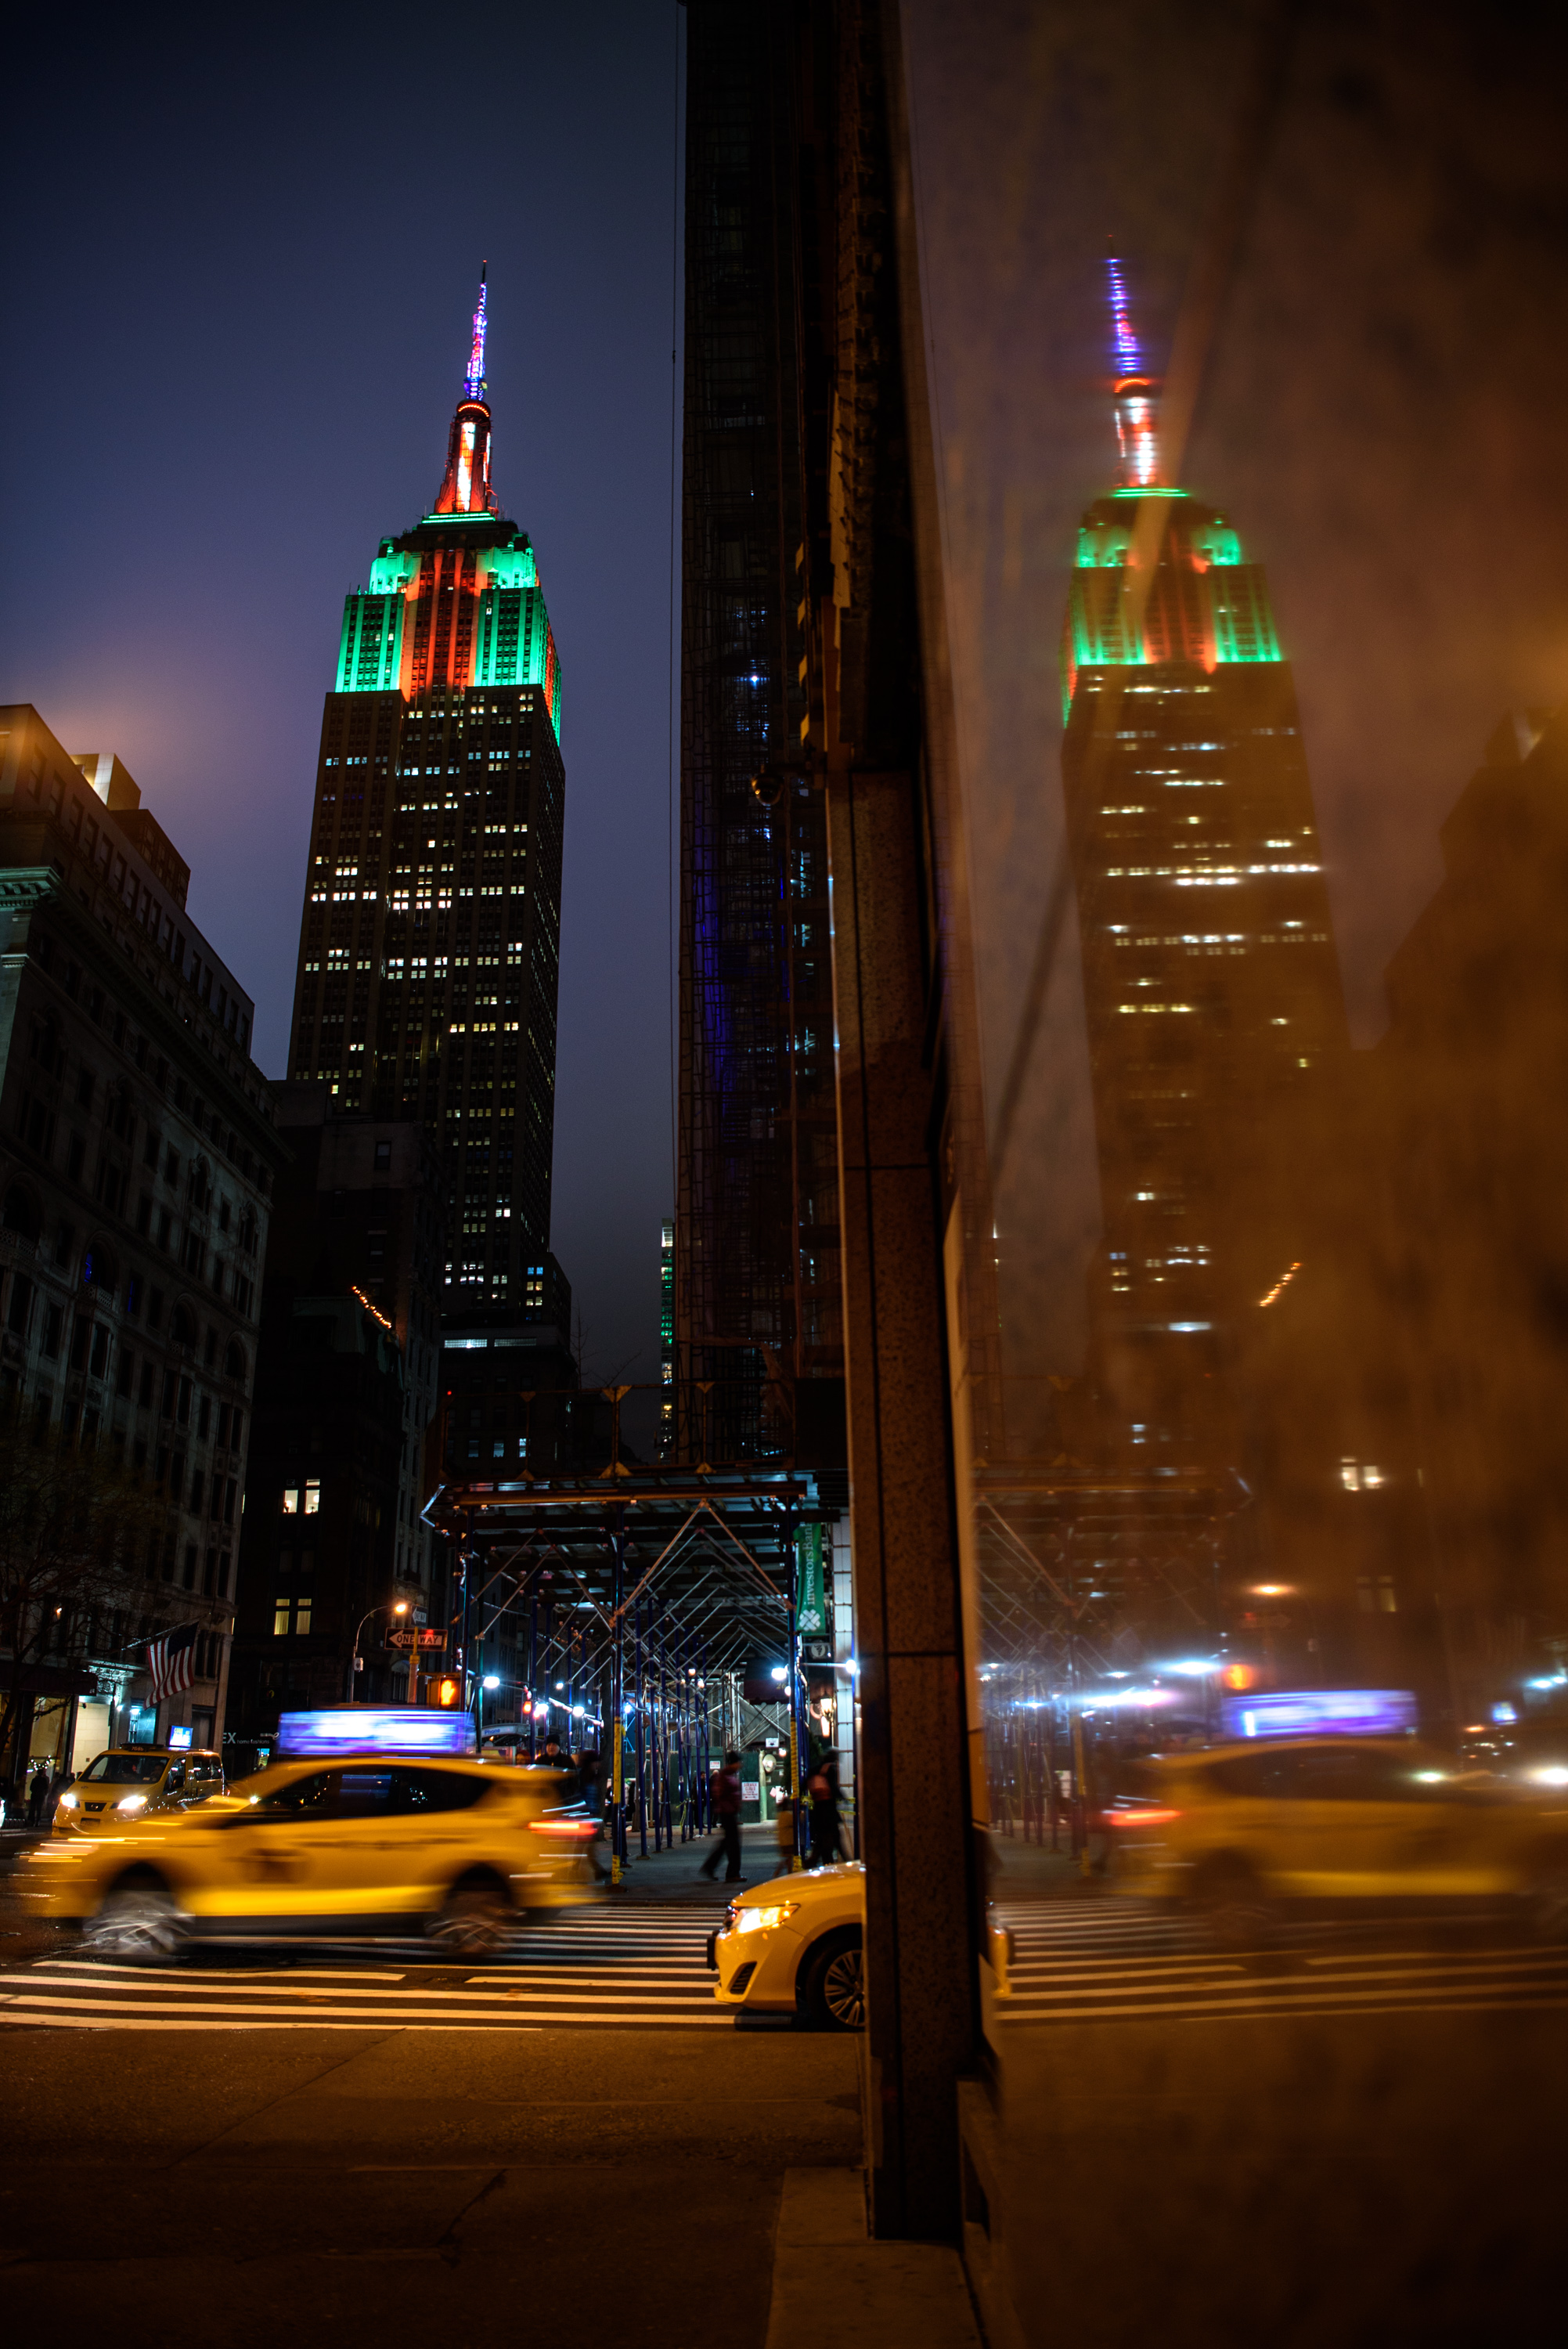 10. Empire State Building